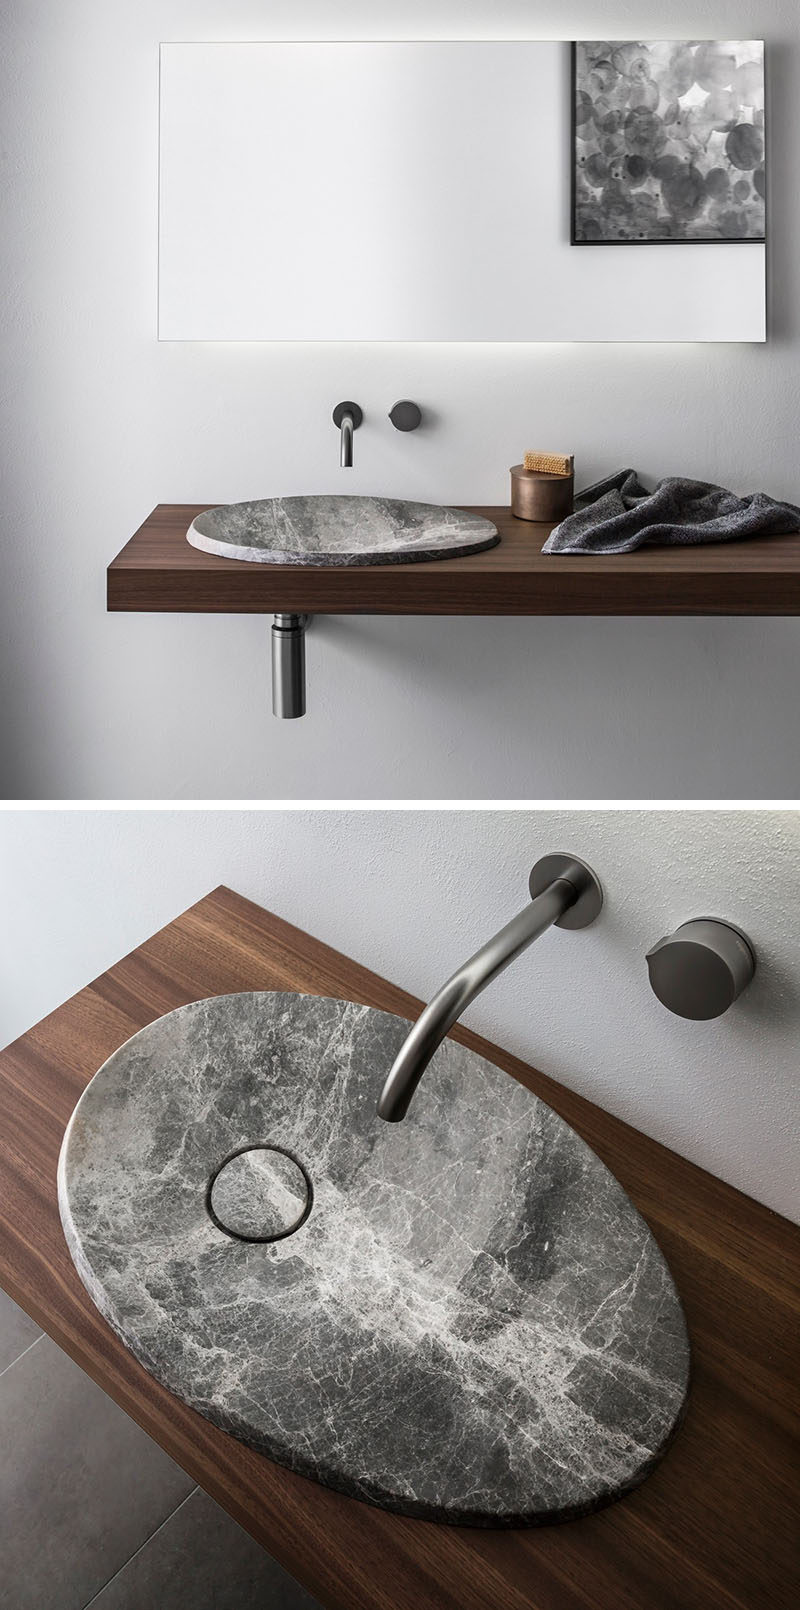 This modern bathroom sink made from natural stone sits on a floating wood  vanity and has The design of this is inspired by the shape